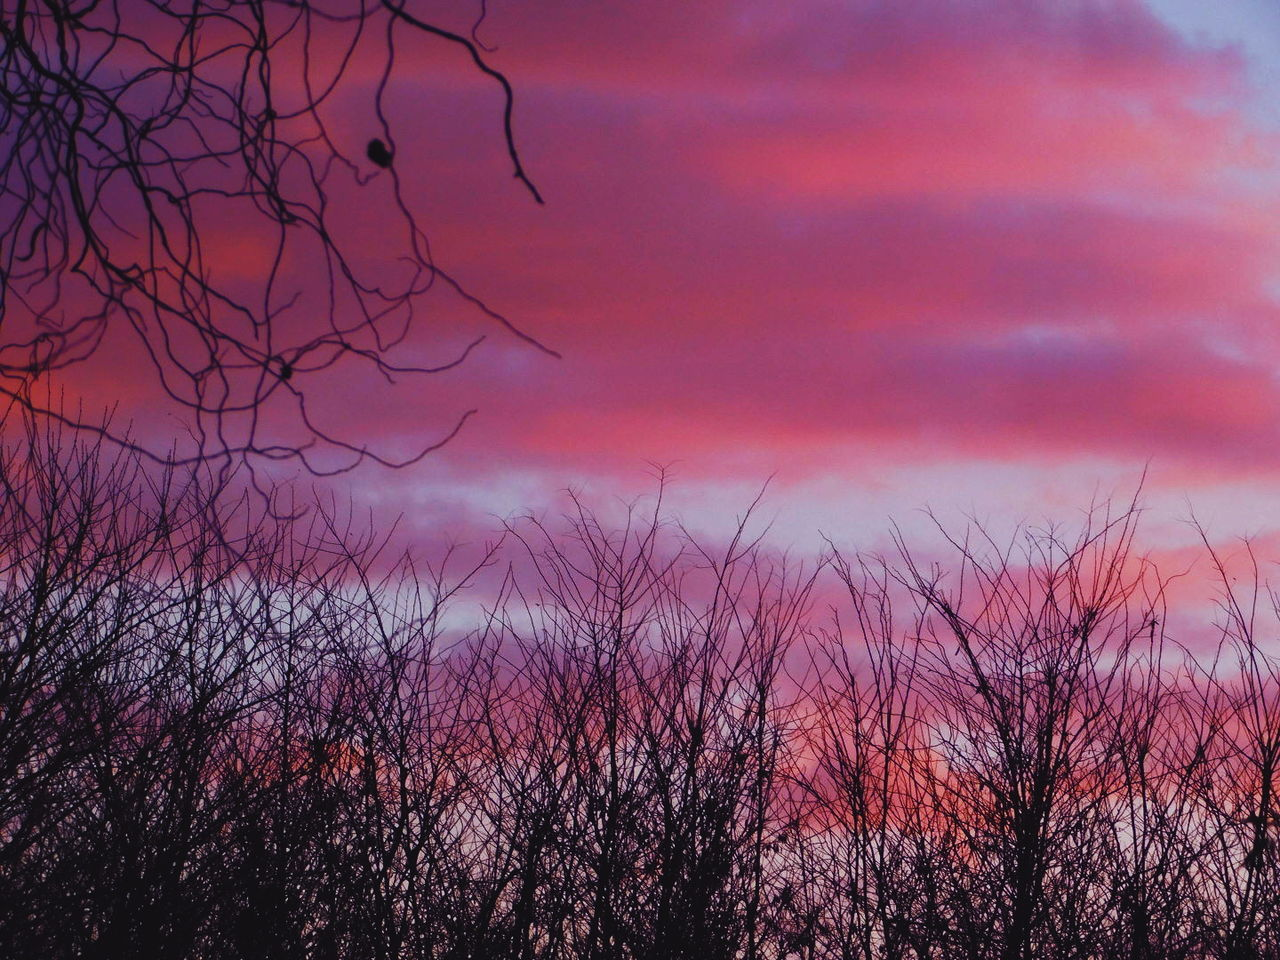 nature, beauty in nature, sky, scenics, tranquility, no people, tranquil scene, bare tree, outdoors, silhouette, tree, sunset, growth, branch, day